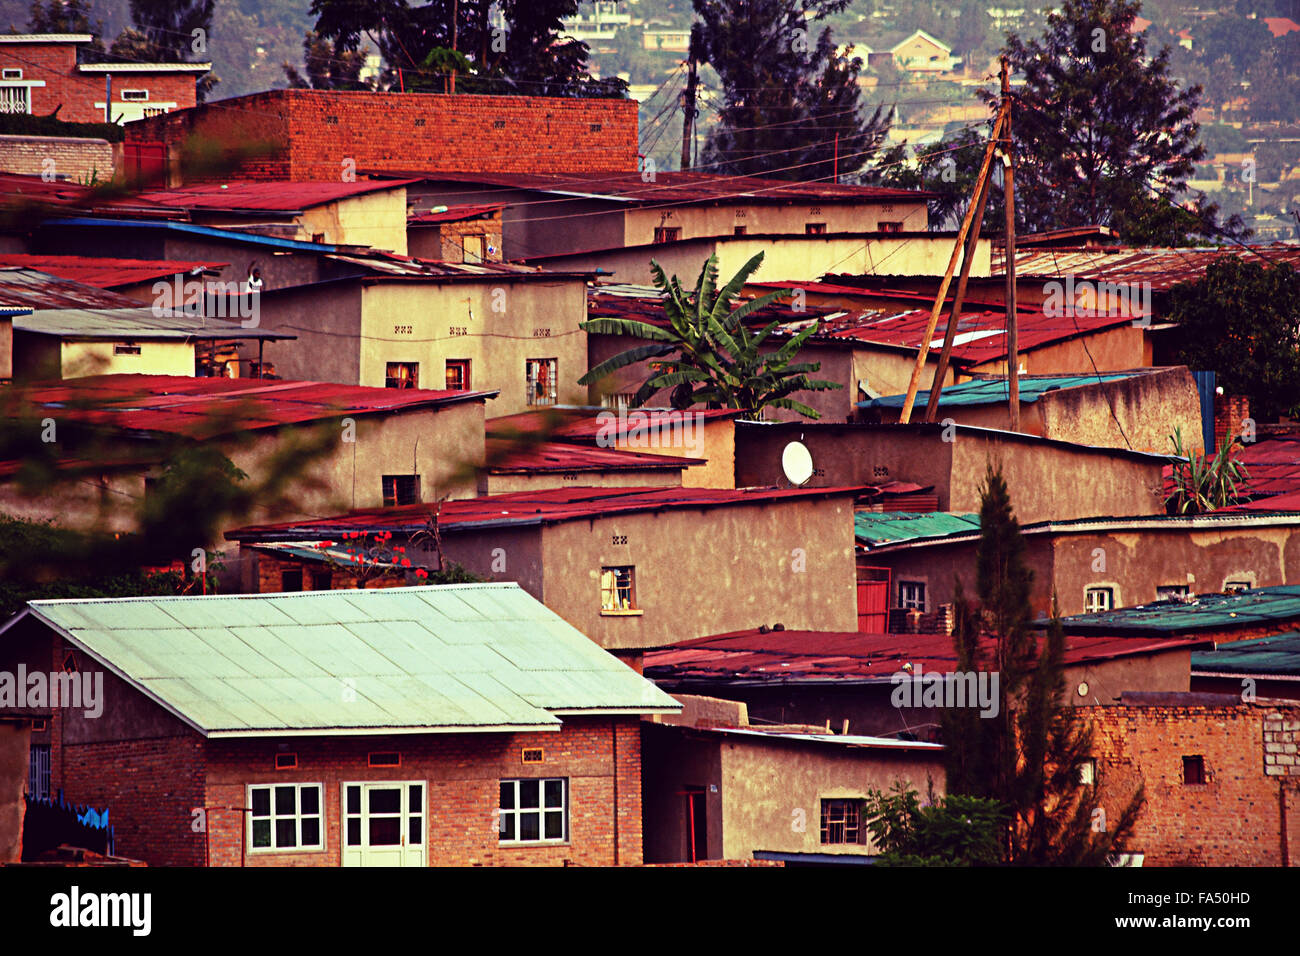 Colorful hillside homes in Kigali, Rwanda retro filter - Stock Image